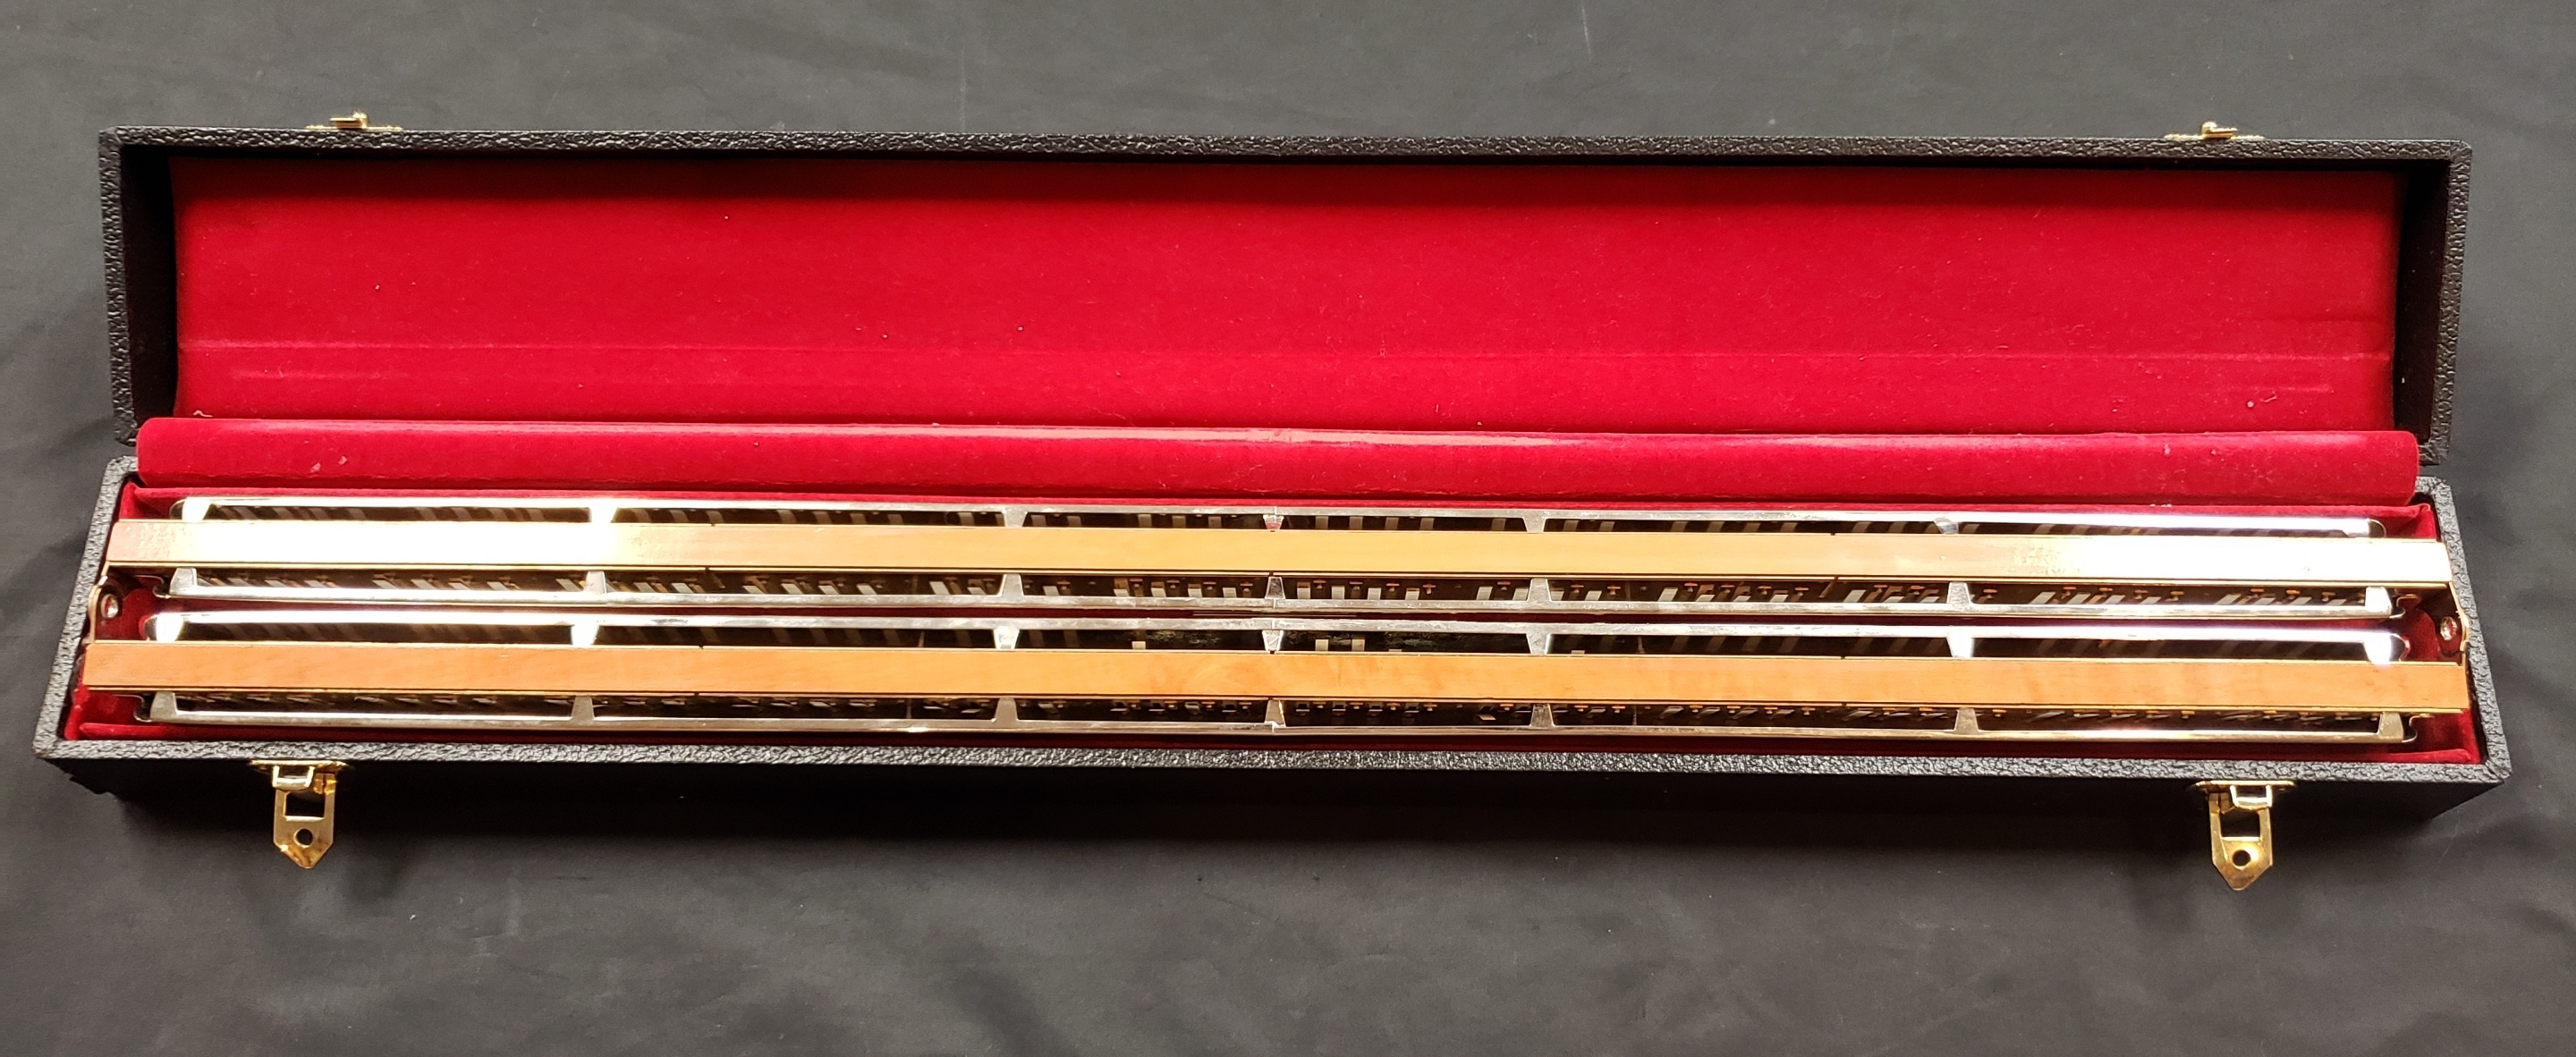 HOHNER - NONE - HARMONICA MUSICAL INSTRUMENT